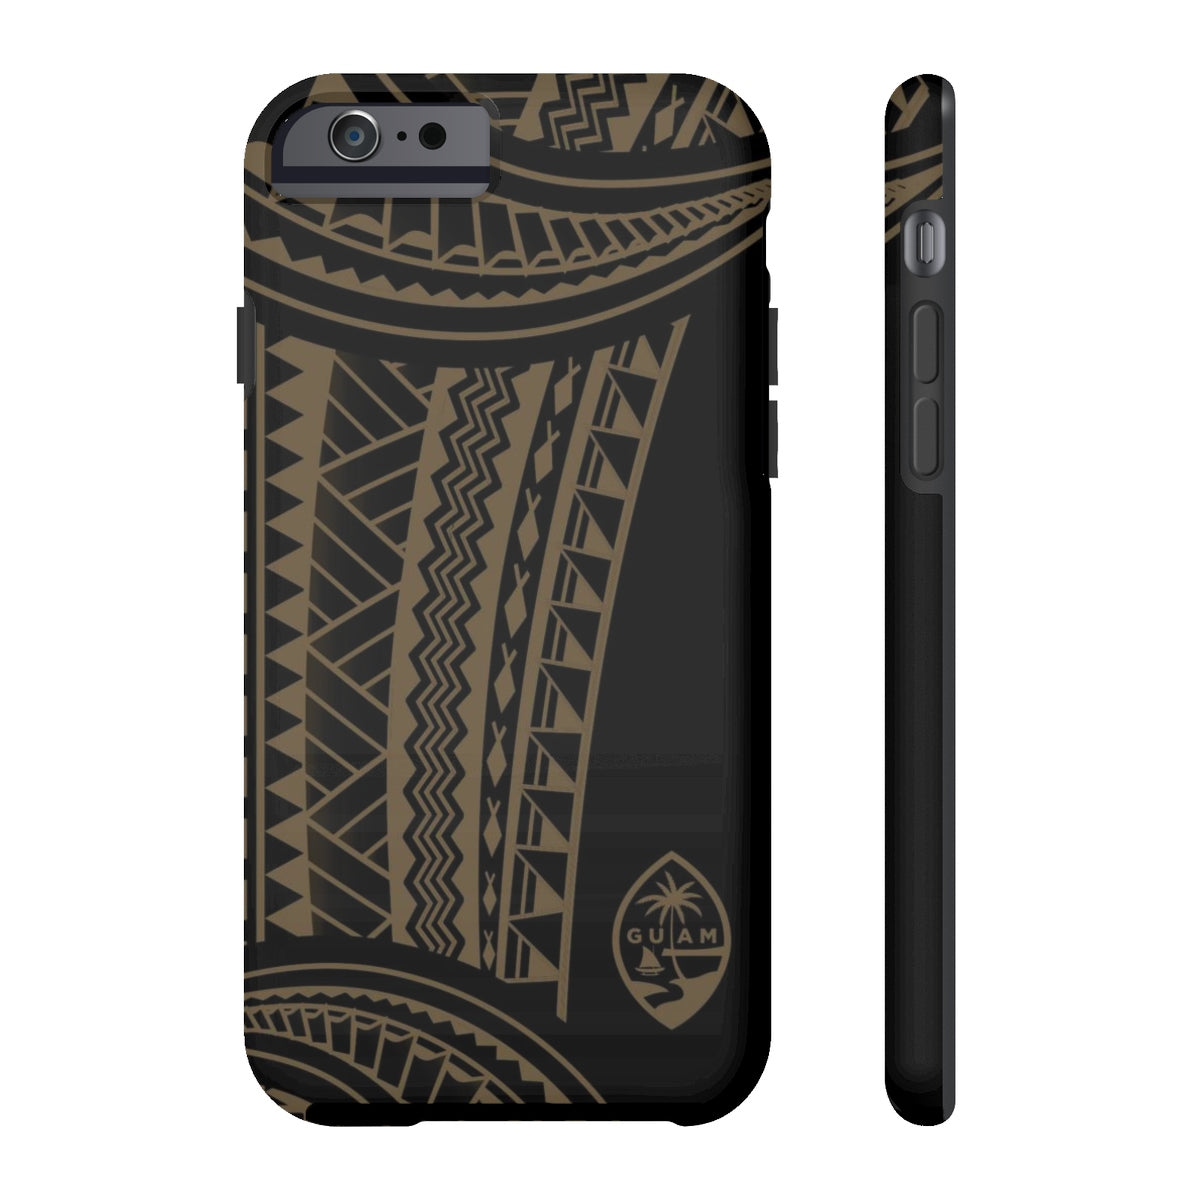 Guam Seal Chamorro Island Tribal Tough Phone Case